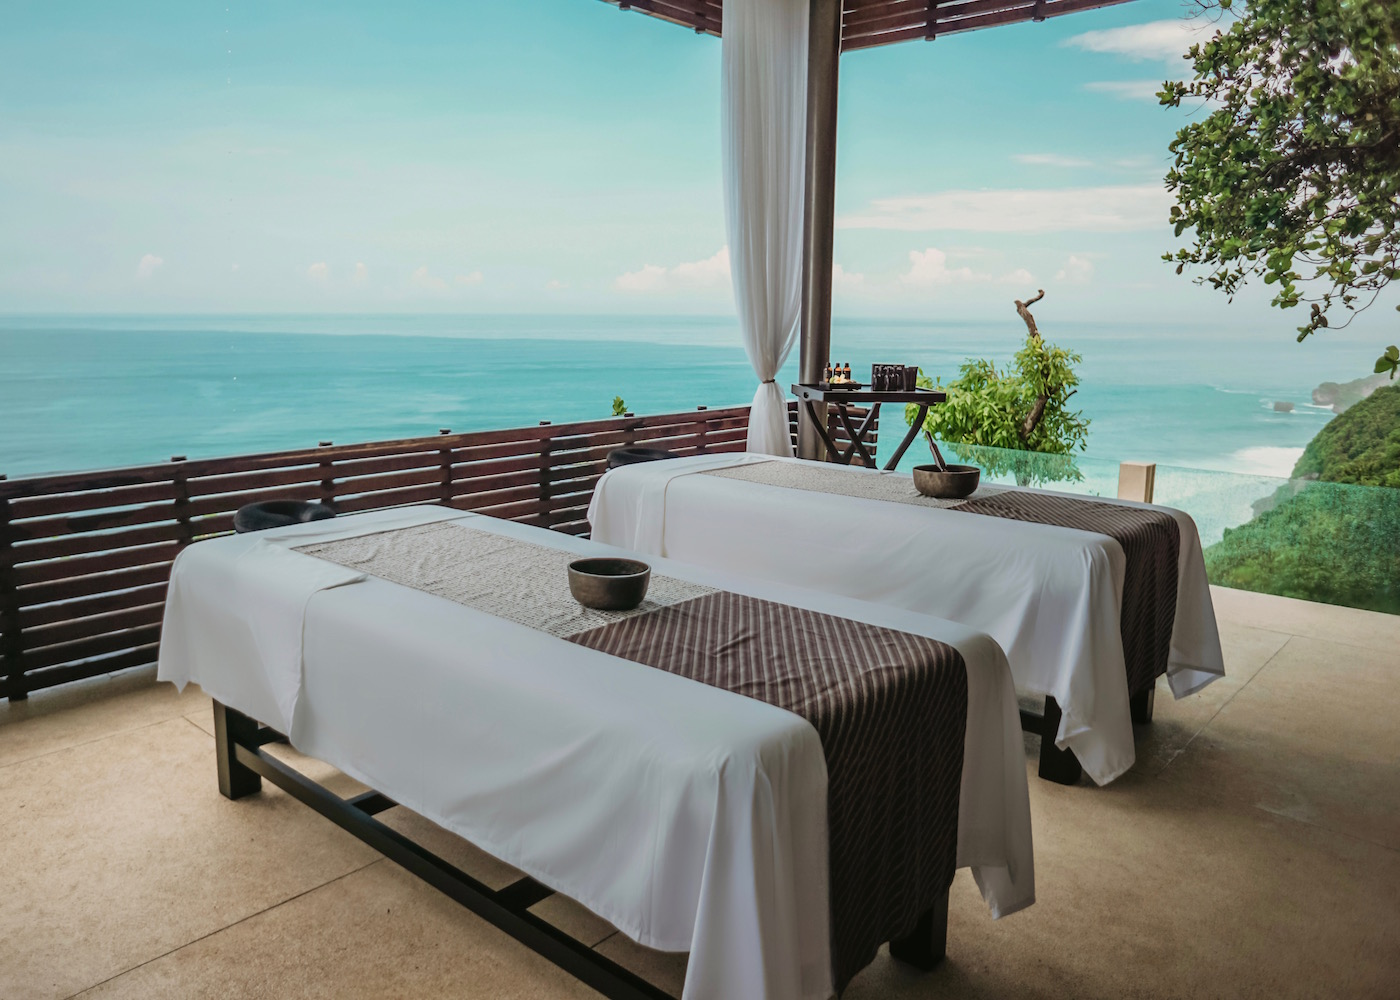 Alila Villas Uluwatu in Bali - Cliff Edge Spa Cabana